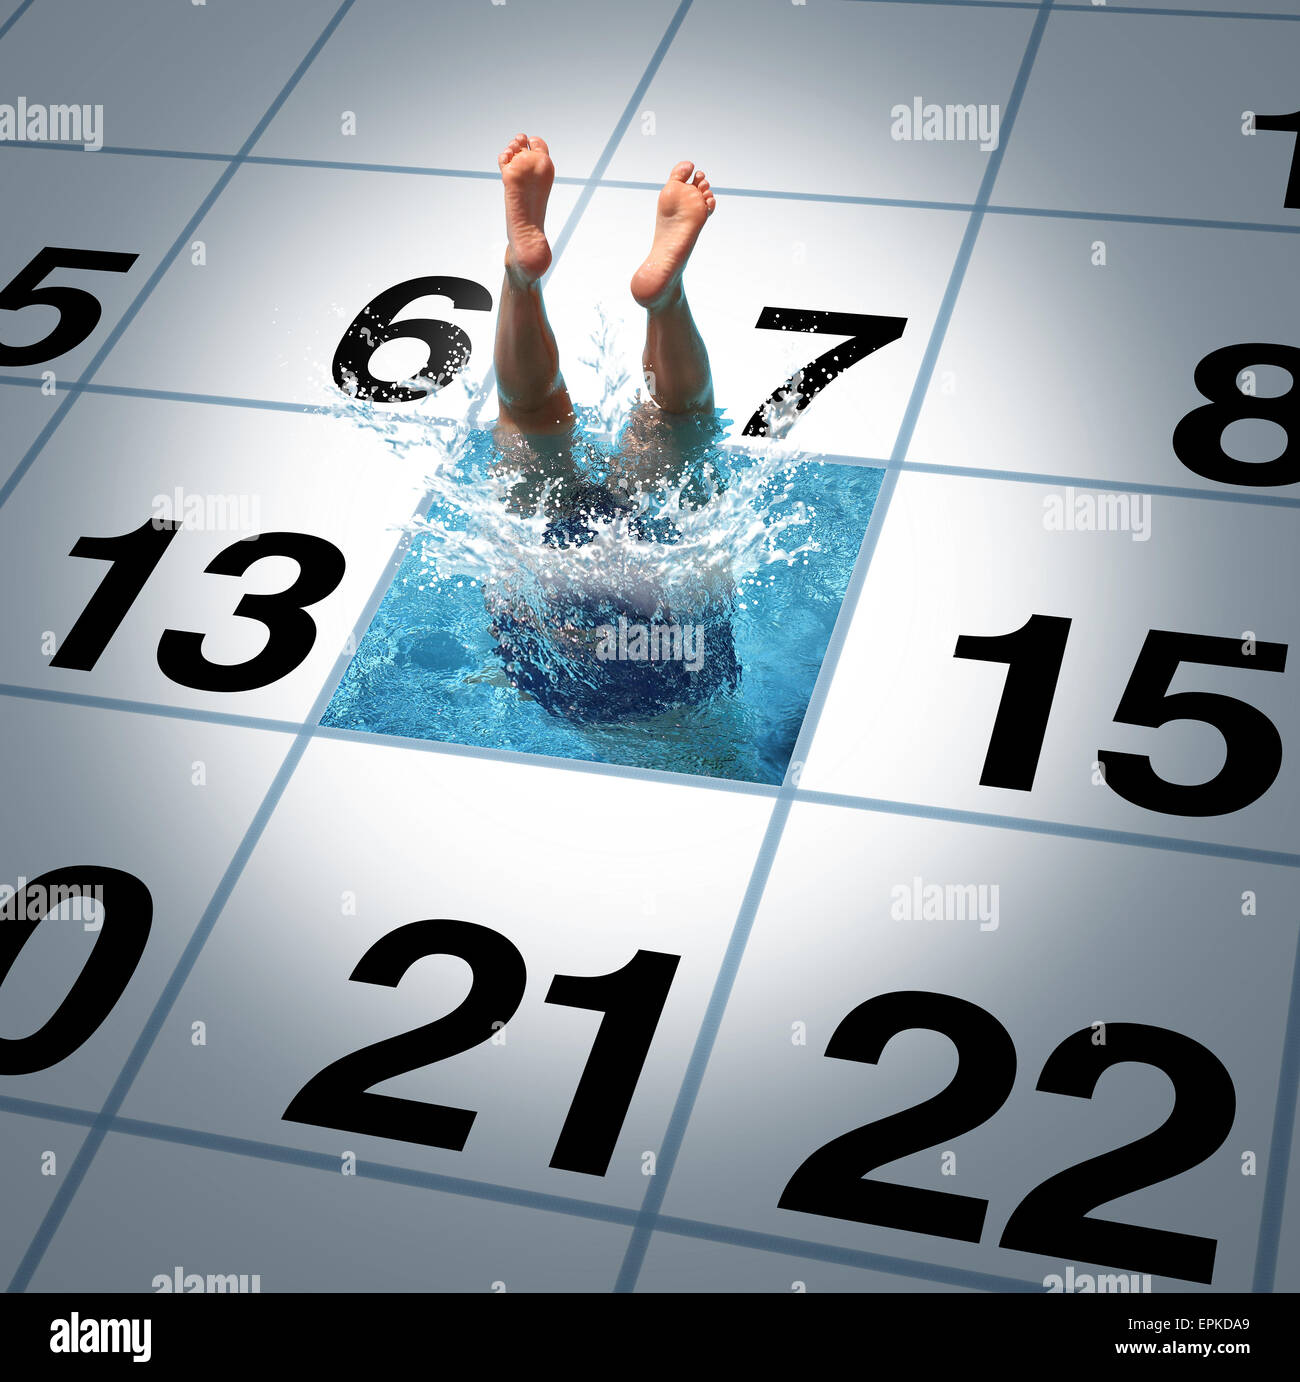 Swimming time as a person jumping and diving into a calendar with a refreshing cool pool as a fitness and healthy - Stock Image